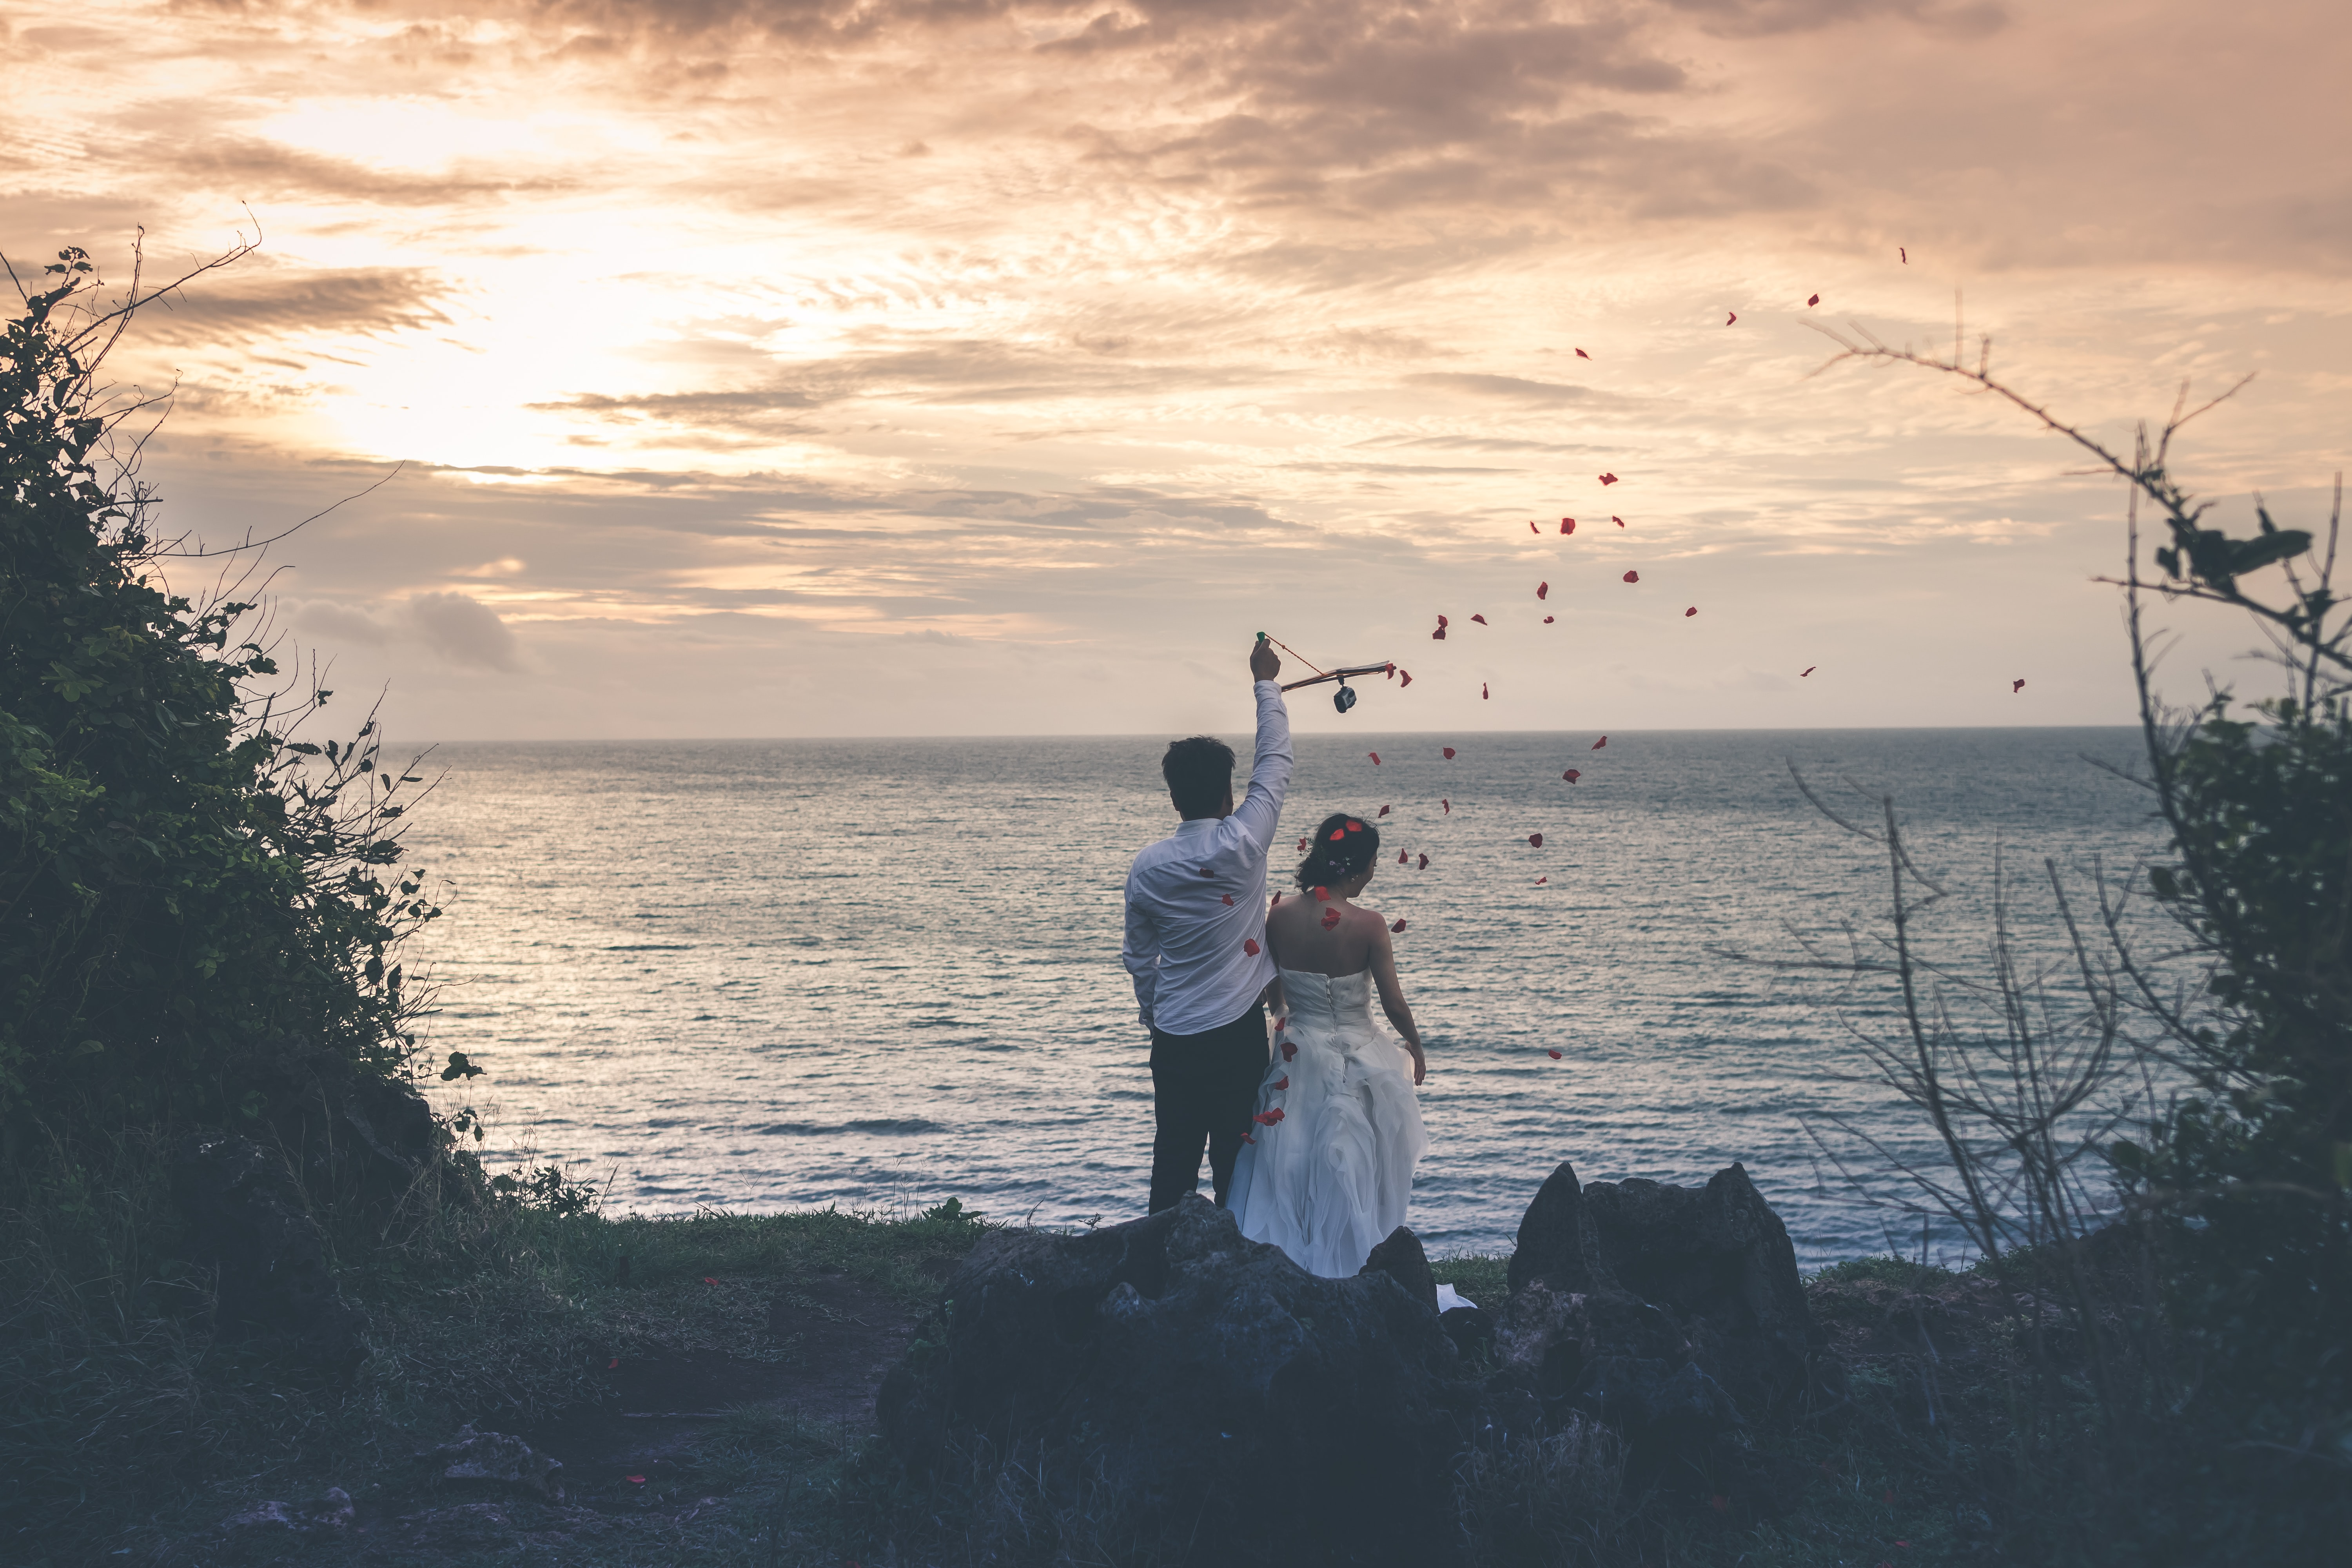 bride and groom standing in front of water body